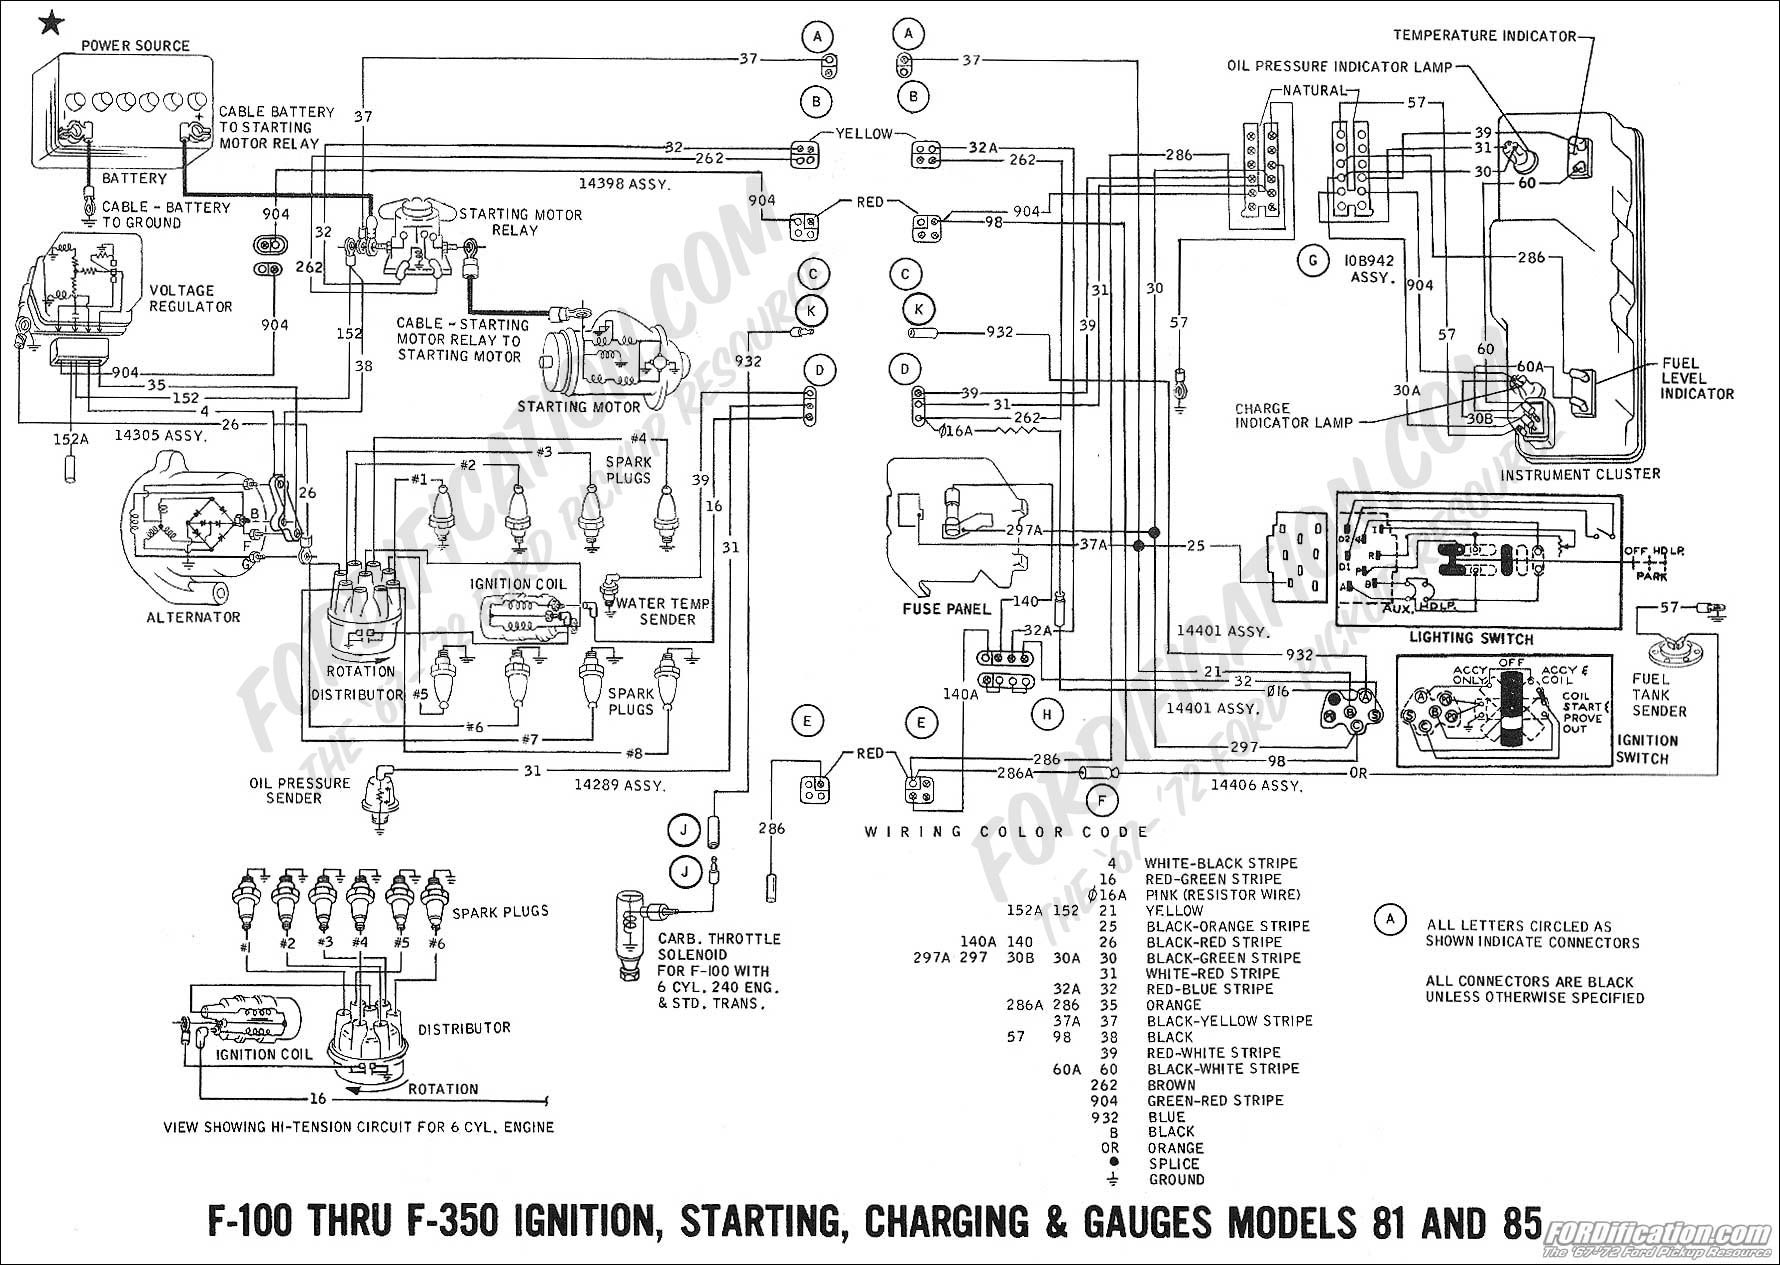 charging system wiring diagram ford charging system wiring diagram further 1970 ford truck wiring of charging system wiring diagram 1950 chevy wiring harness wiring schematics diagram